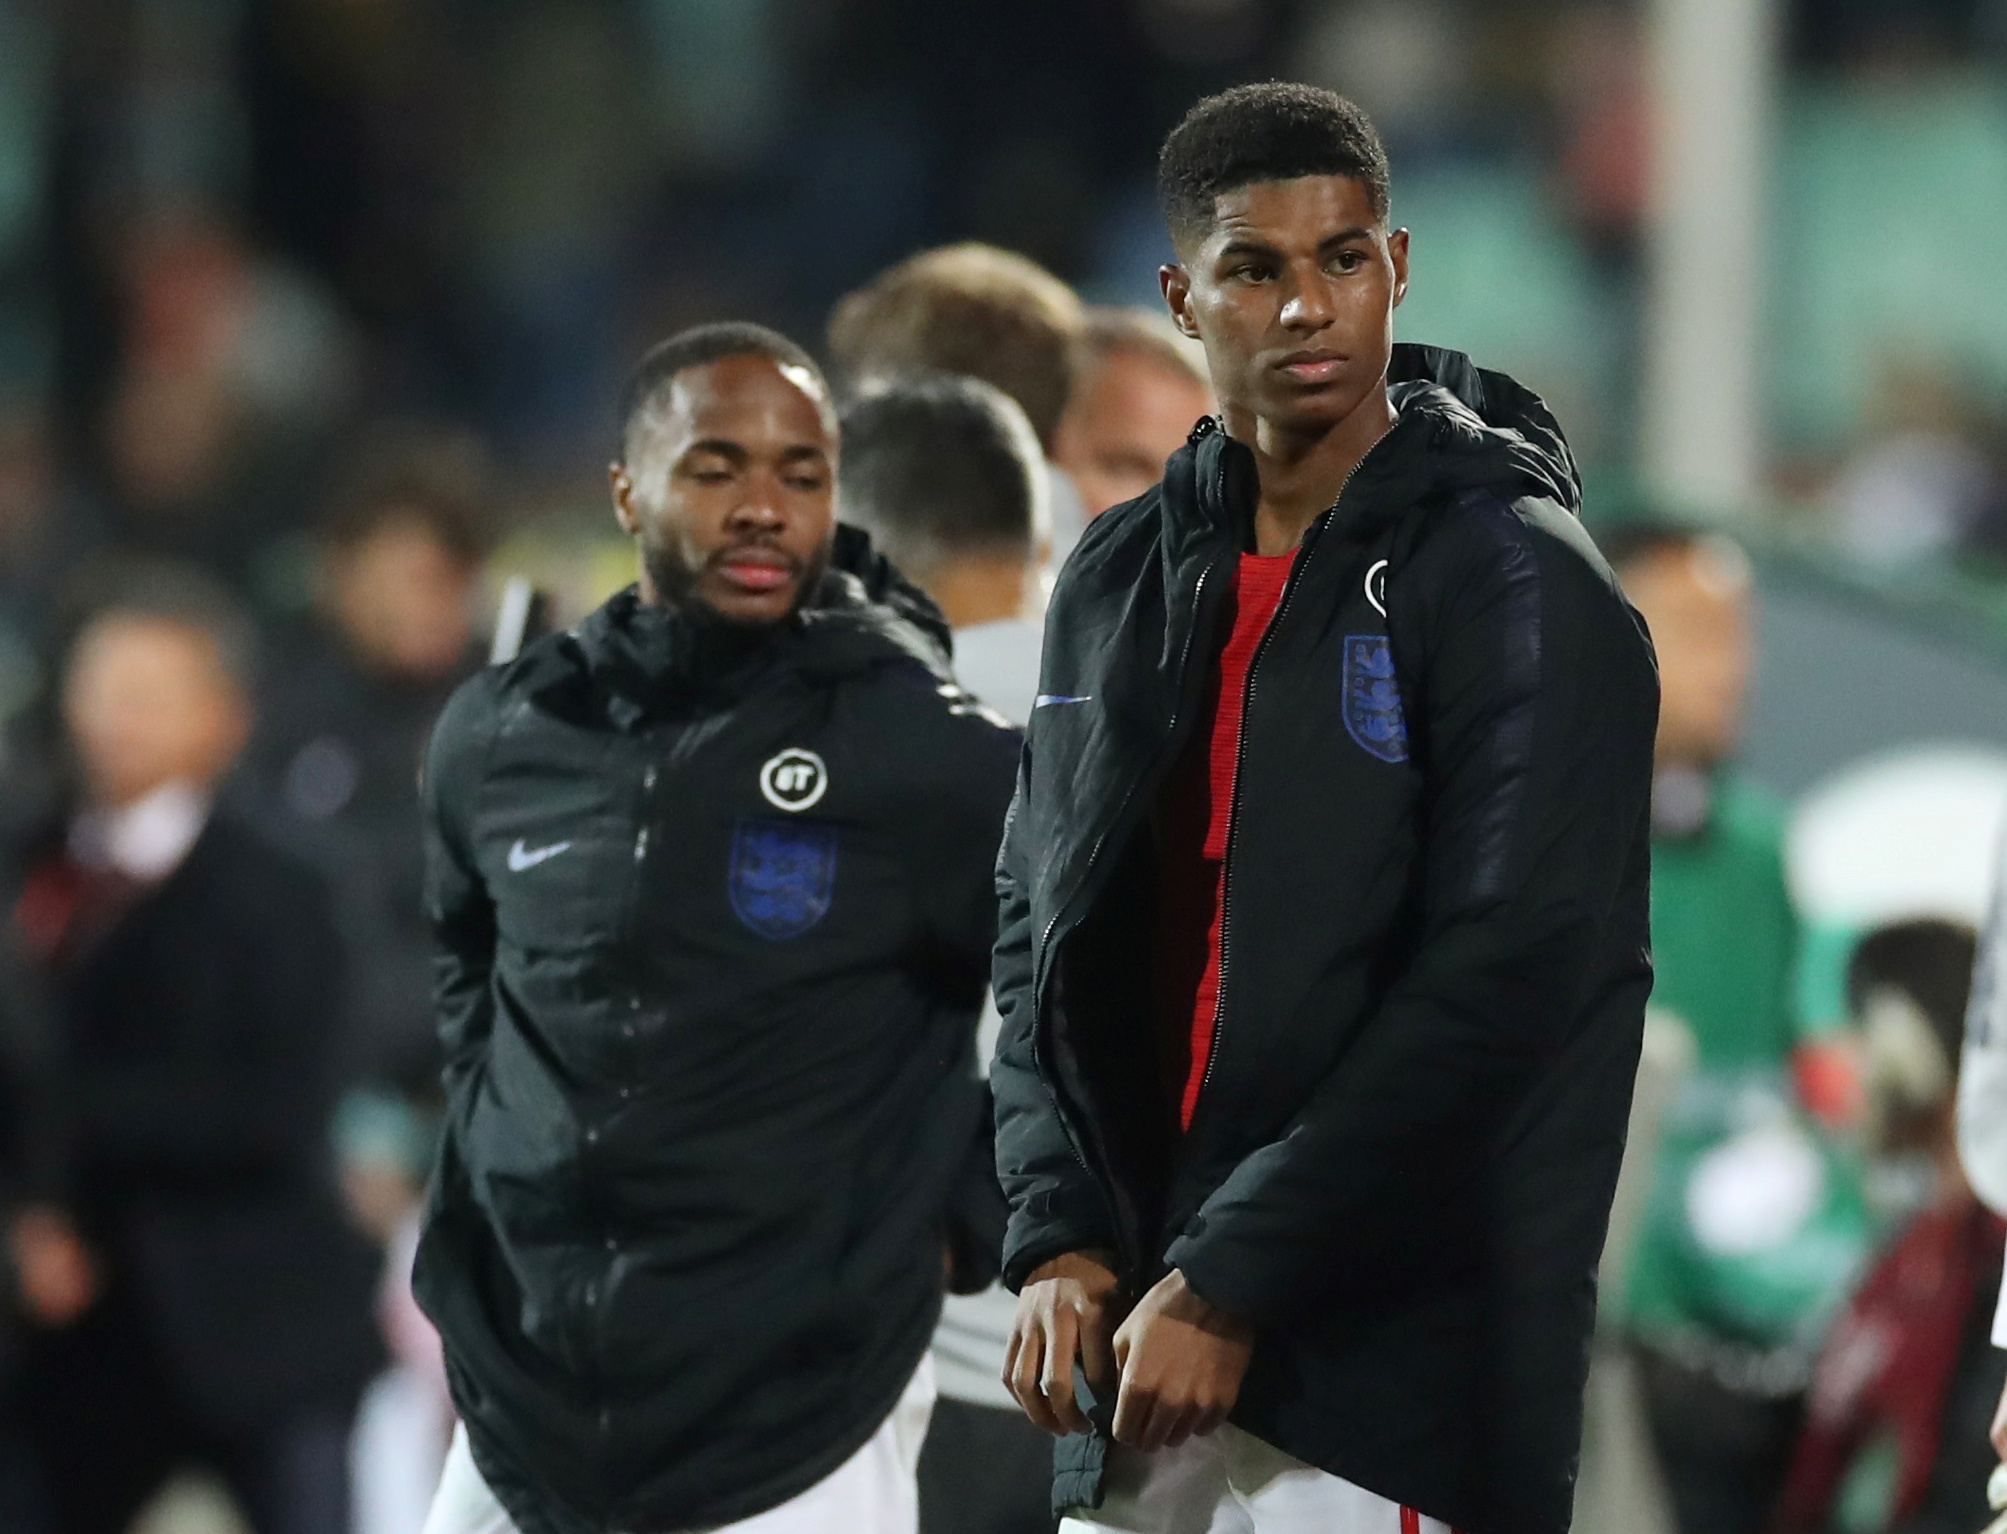 Rashford involved again in racist incident